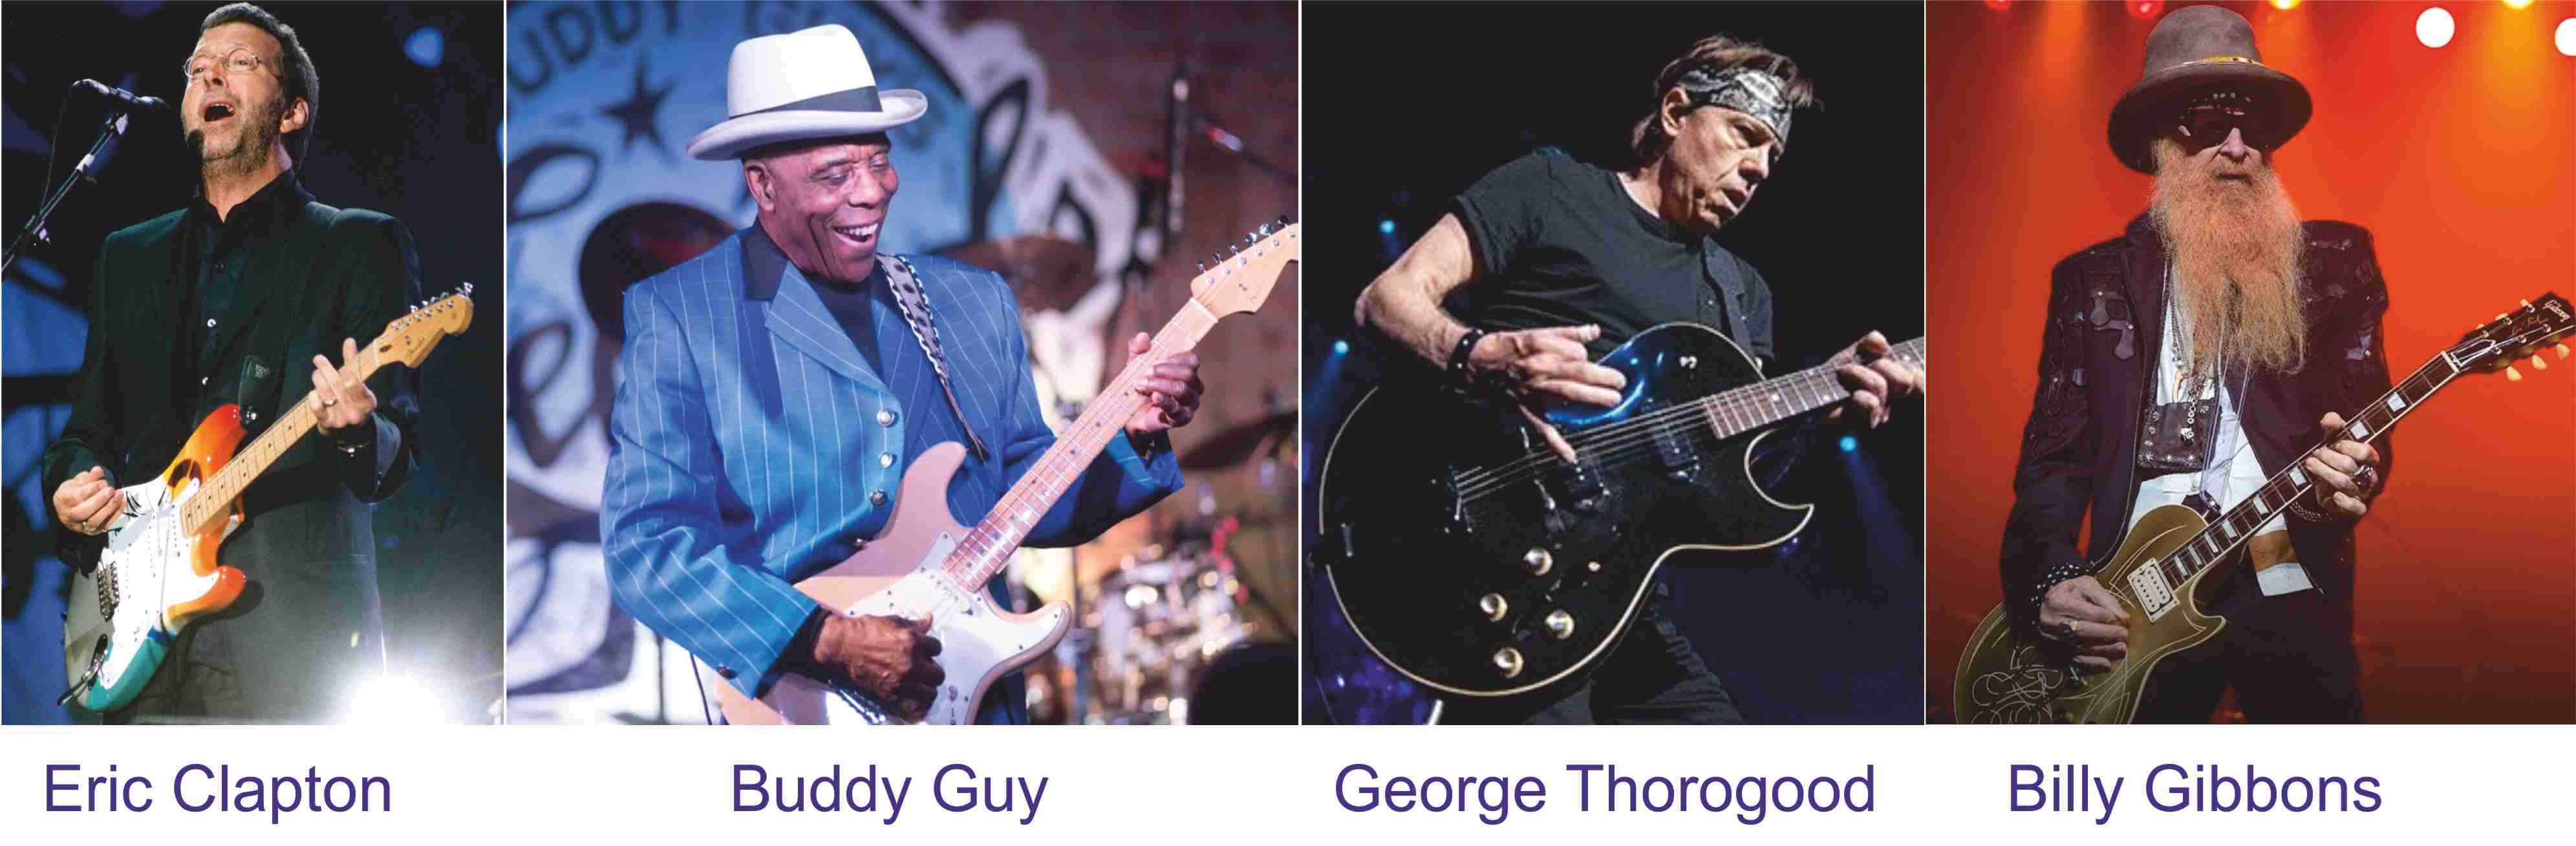 Blues is the new Black. Guitar heroes. Eric Clapton, Buddy Guy, George Thorogood, Billy Gibbons.